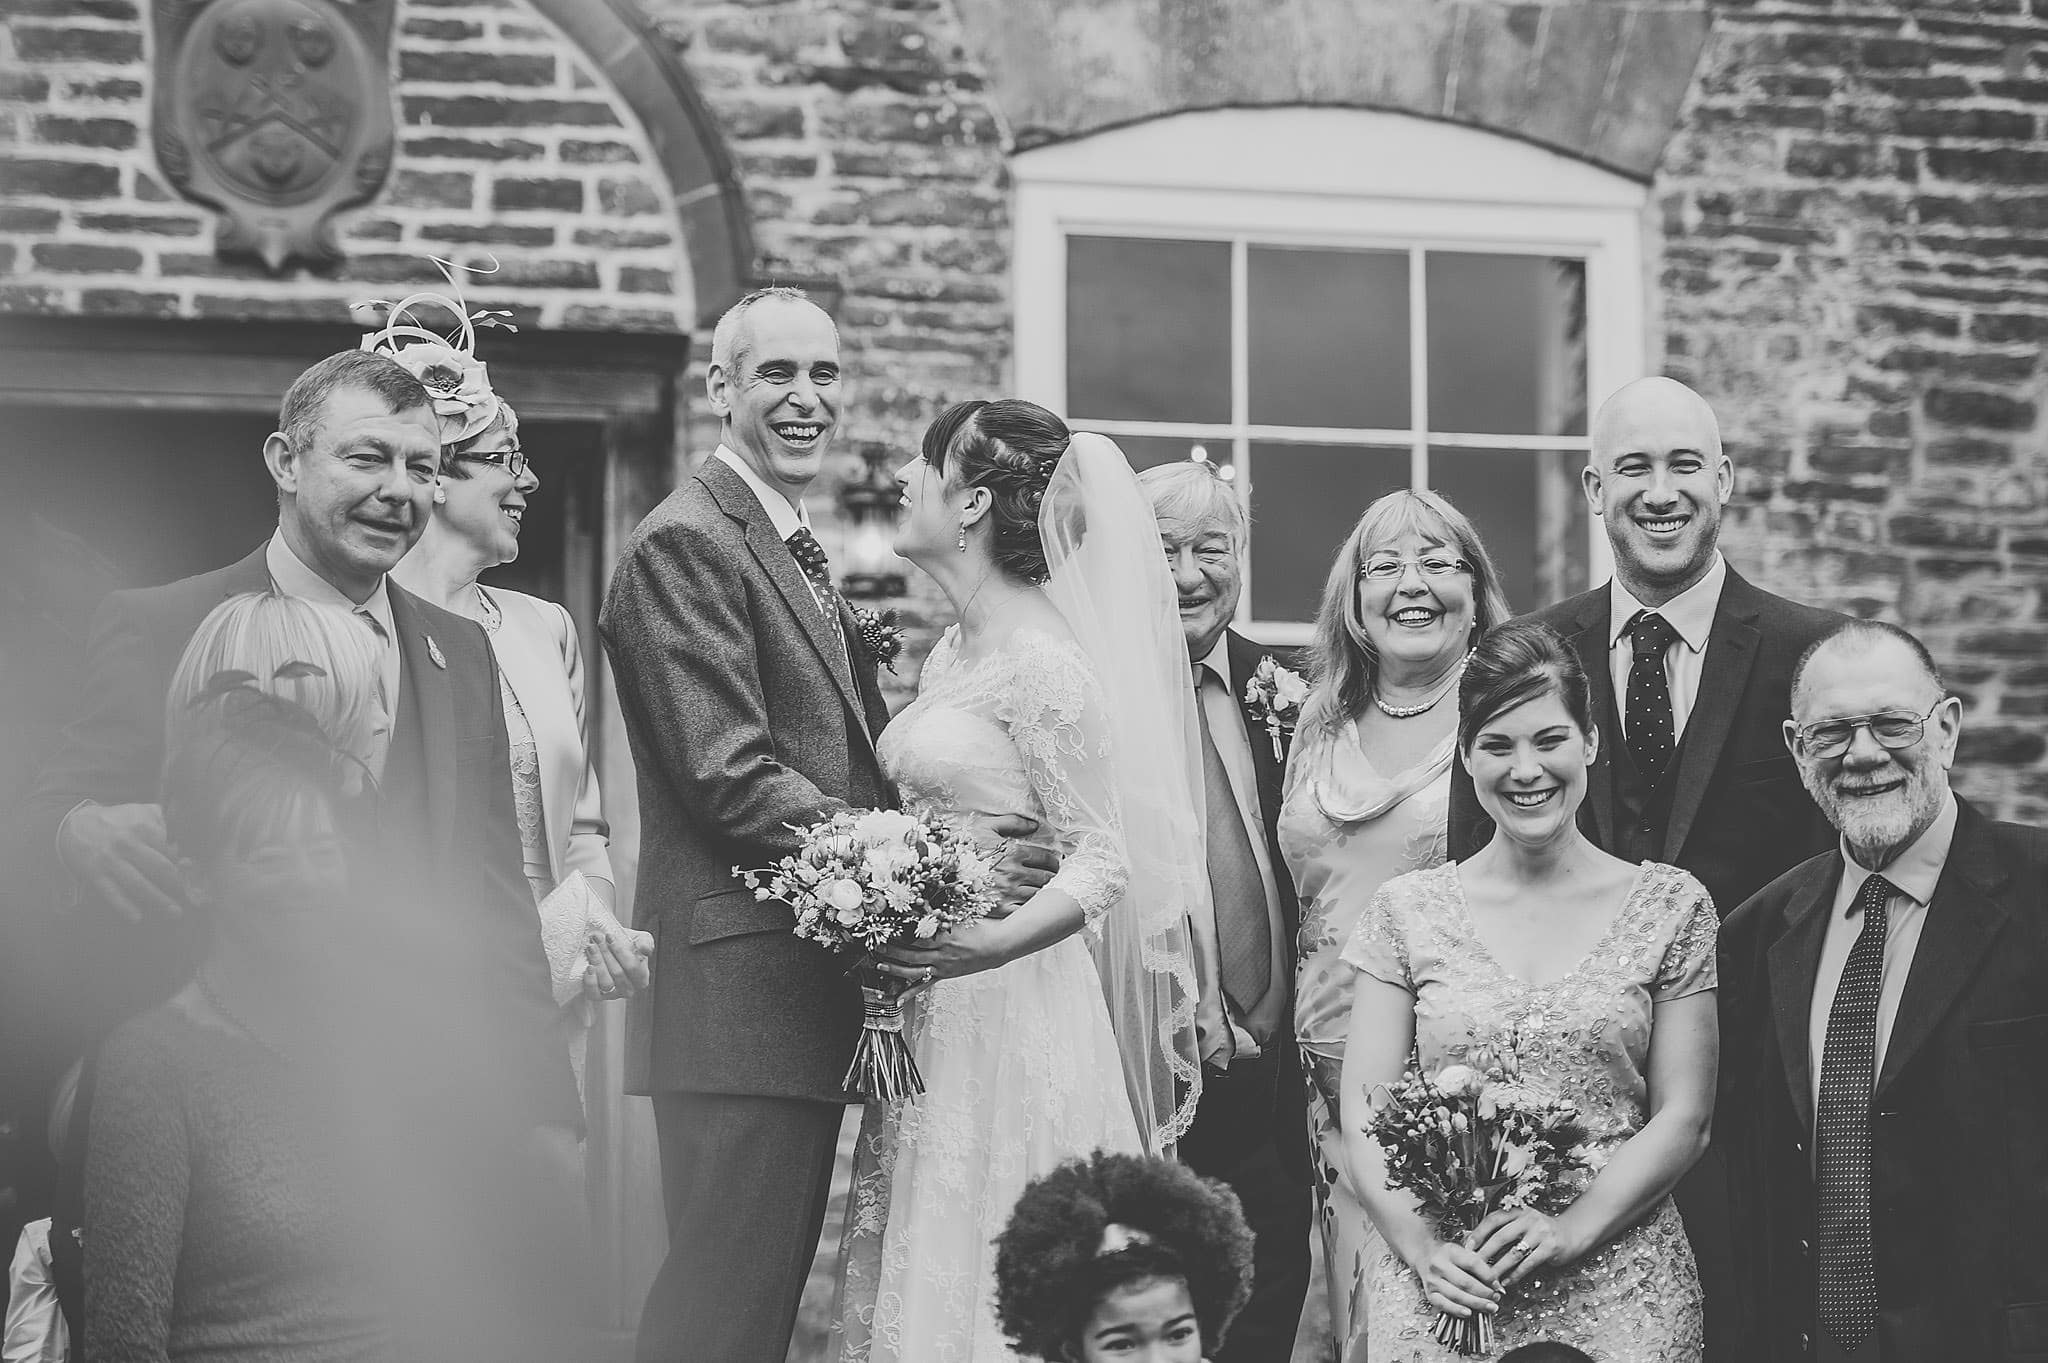 dewsall court wedding photography herefordshire 149 - Dewsall Court wedding photography Herefordshire | Laura + Alex